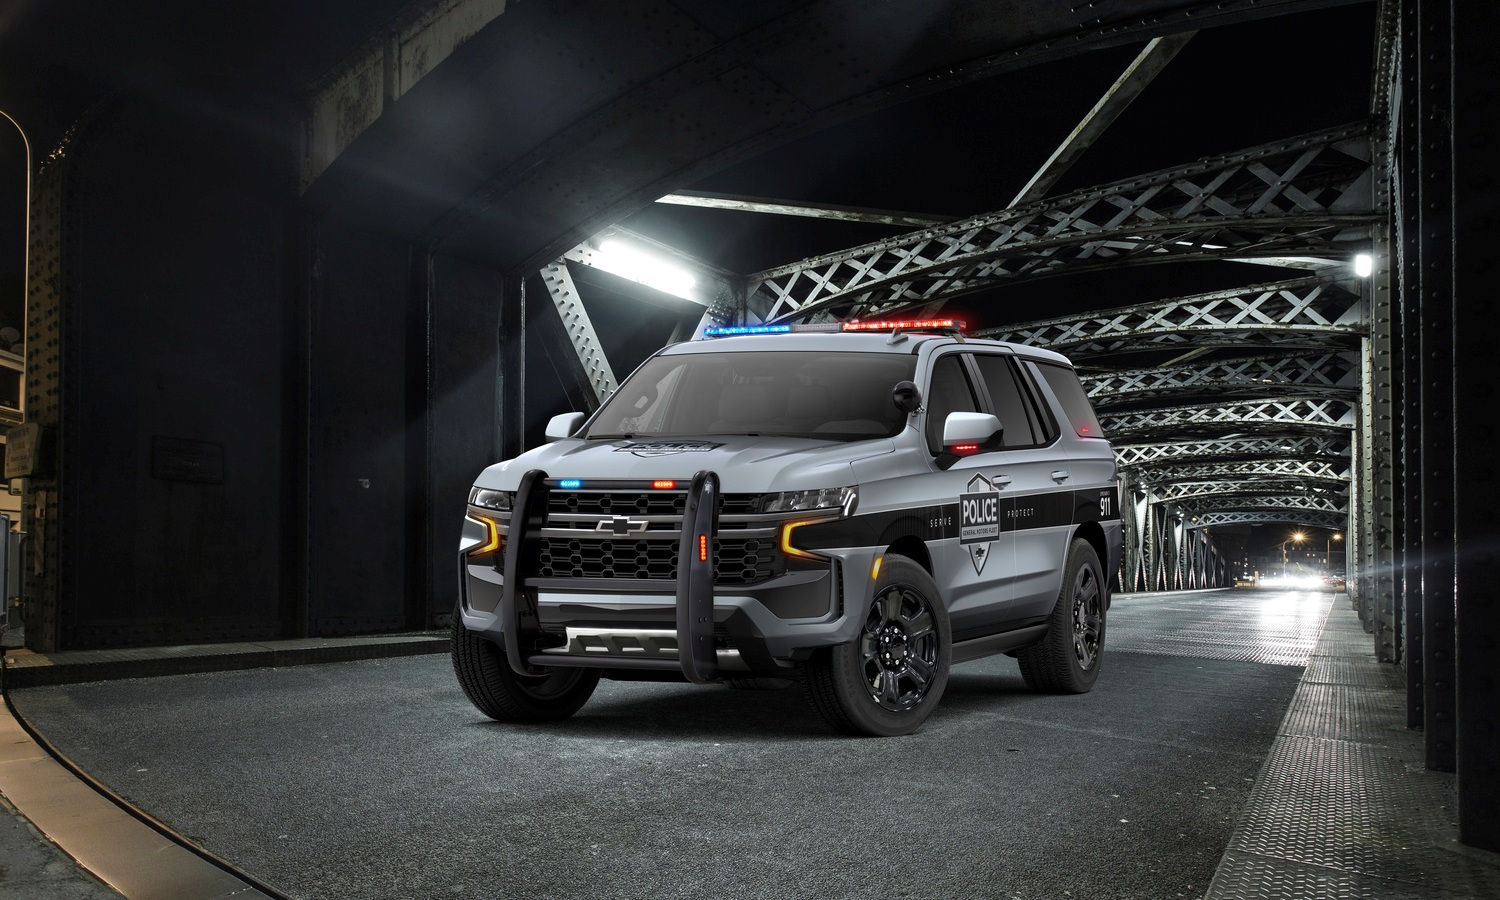 Chevrolet Tahoe Police Pursuit Vehicle (PPV) 2021